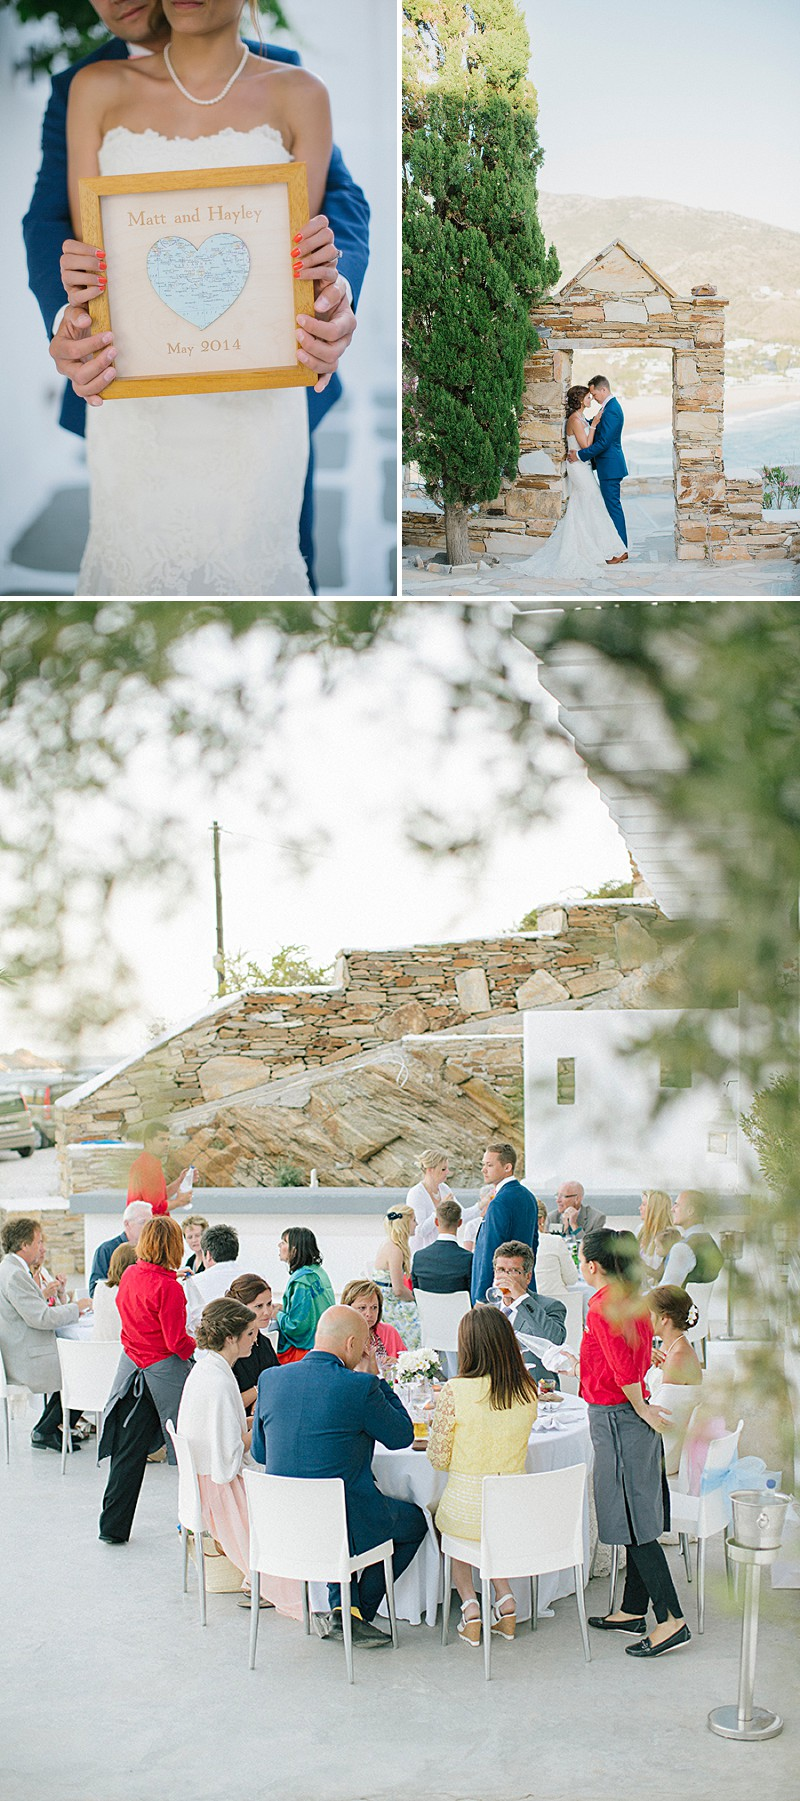 A Greek Destination Wedding On Tzamaria Beach In iOS With A Enzoani Dress And Peach Bridesmaid Dresses With Photography By Anna Roussos._0008